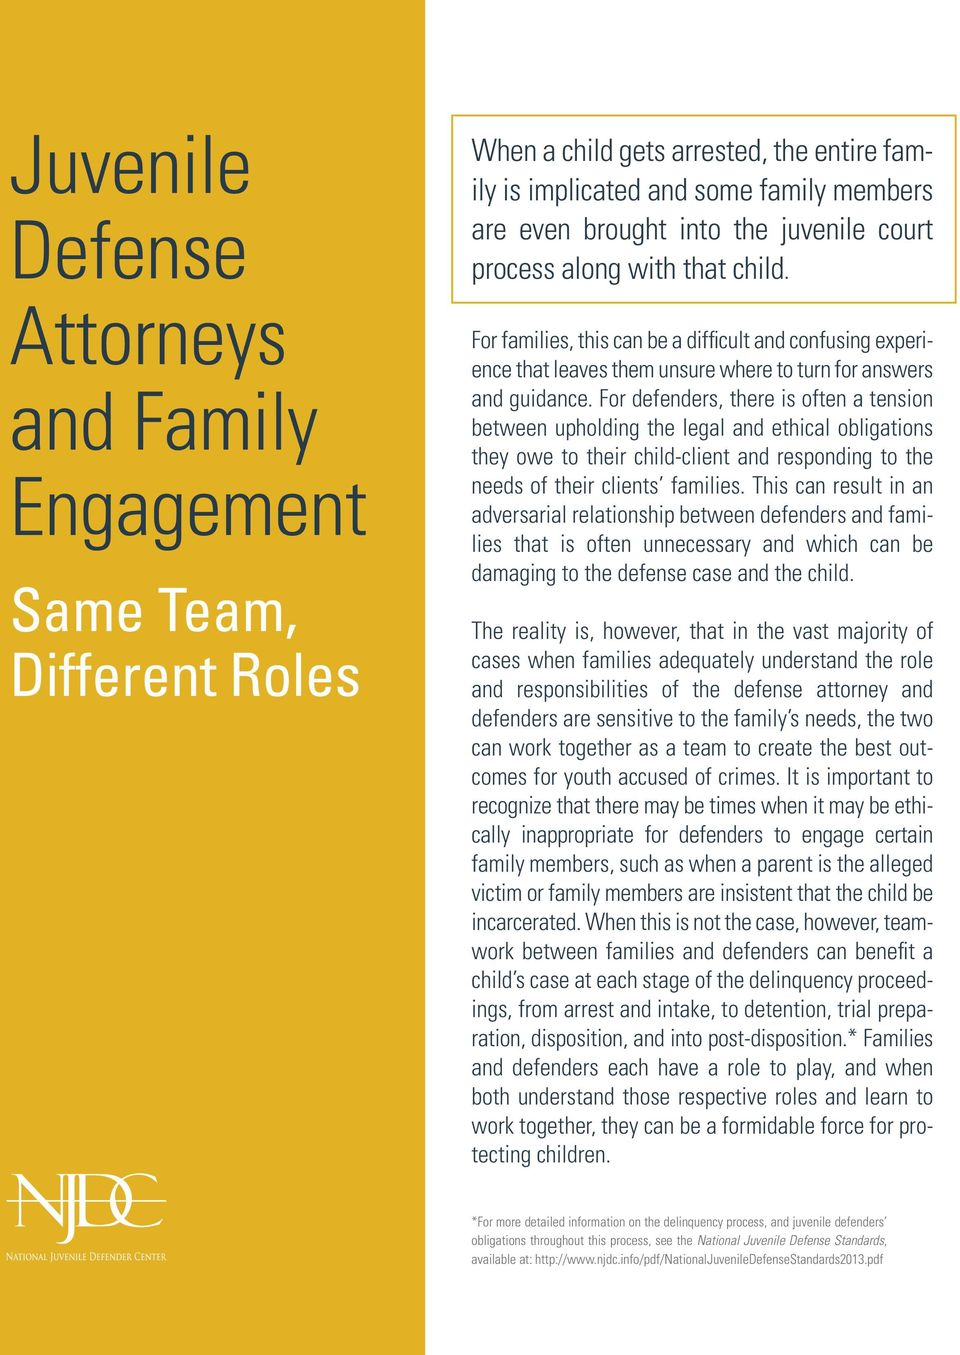 For defenders, there is often a tension between upholding the legal and ethical obligations they owe to their child-client and responding to the needs of their clients families.